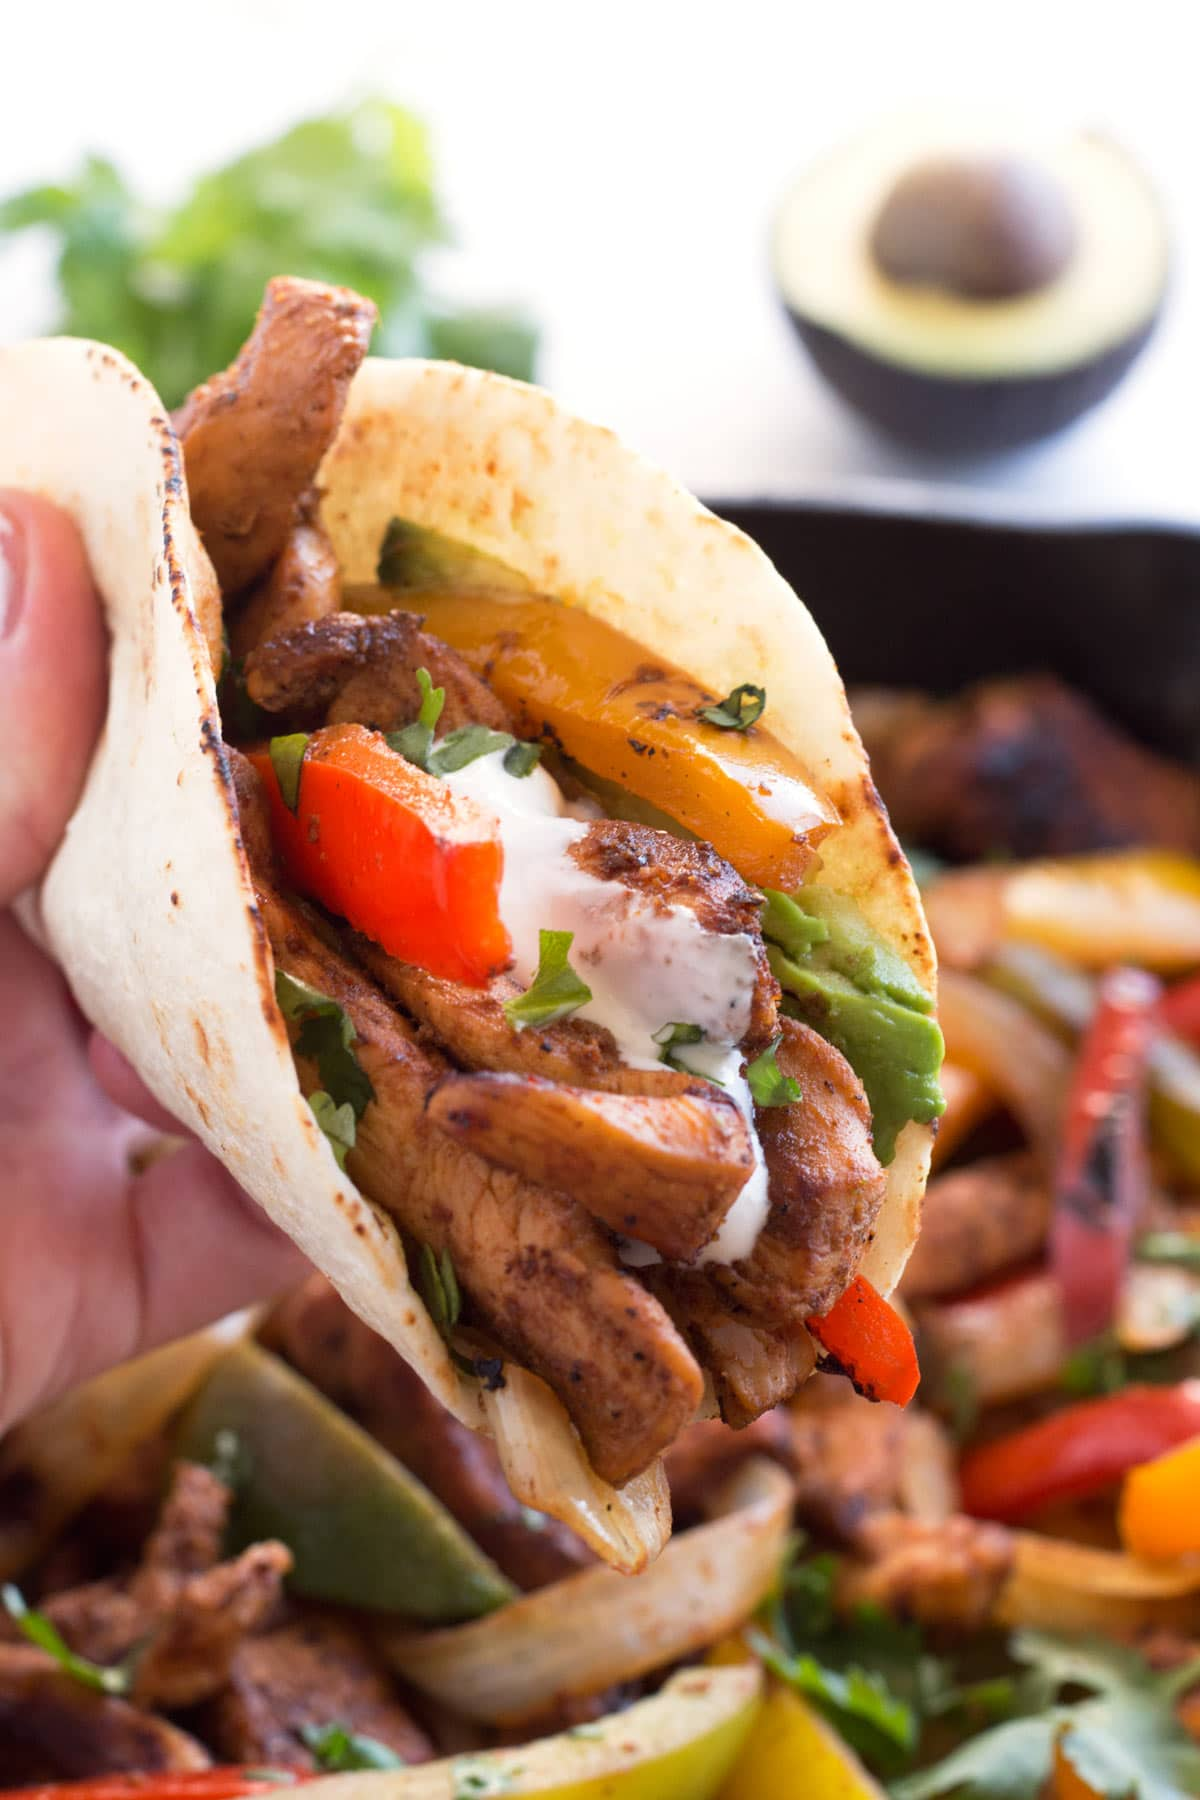 Hand holding fajita filling in a tortilla with toppings.